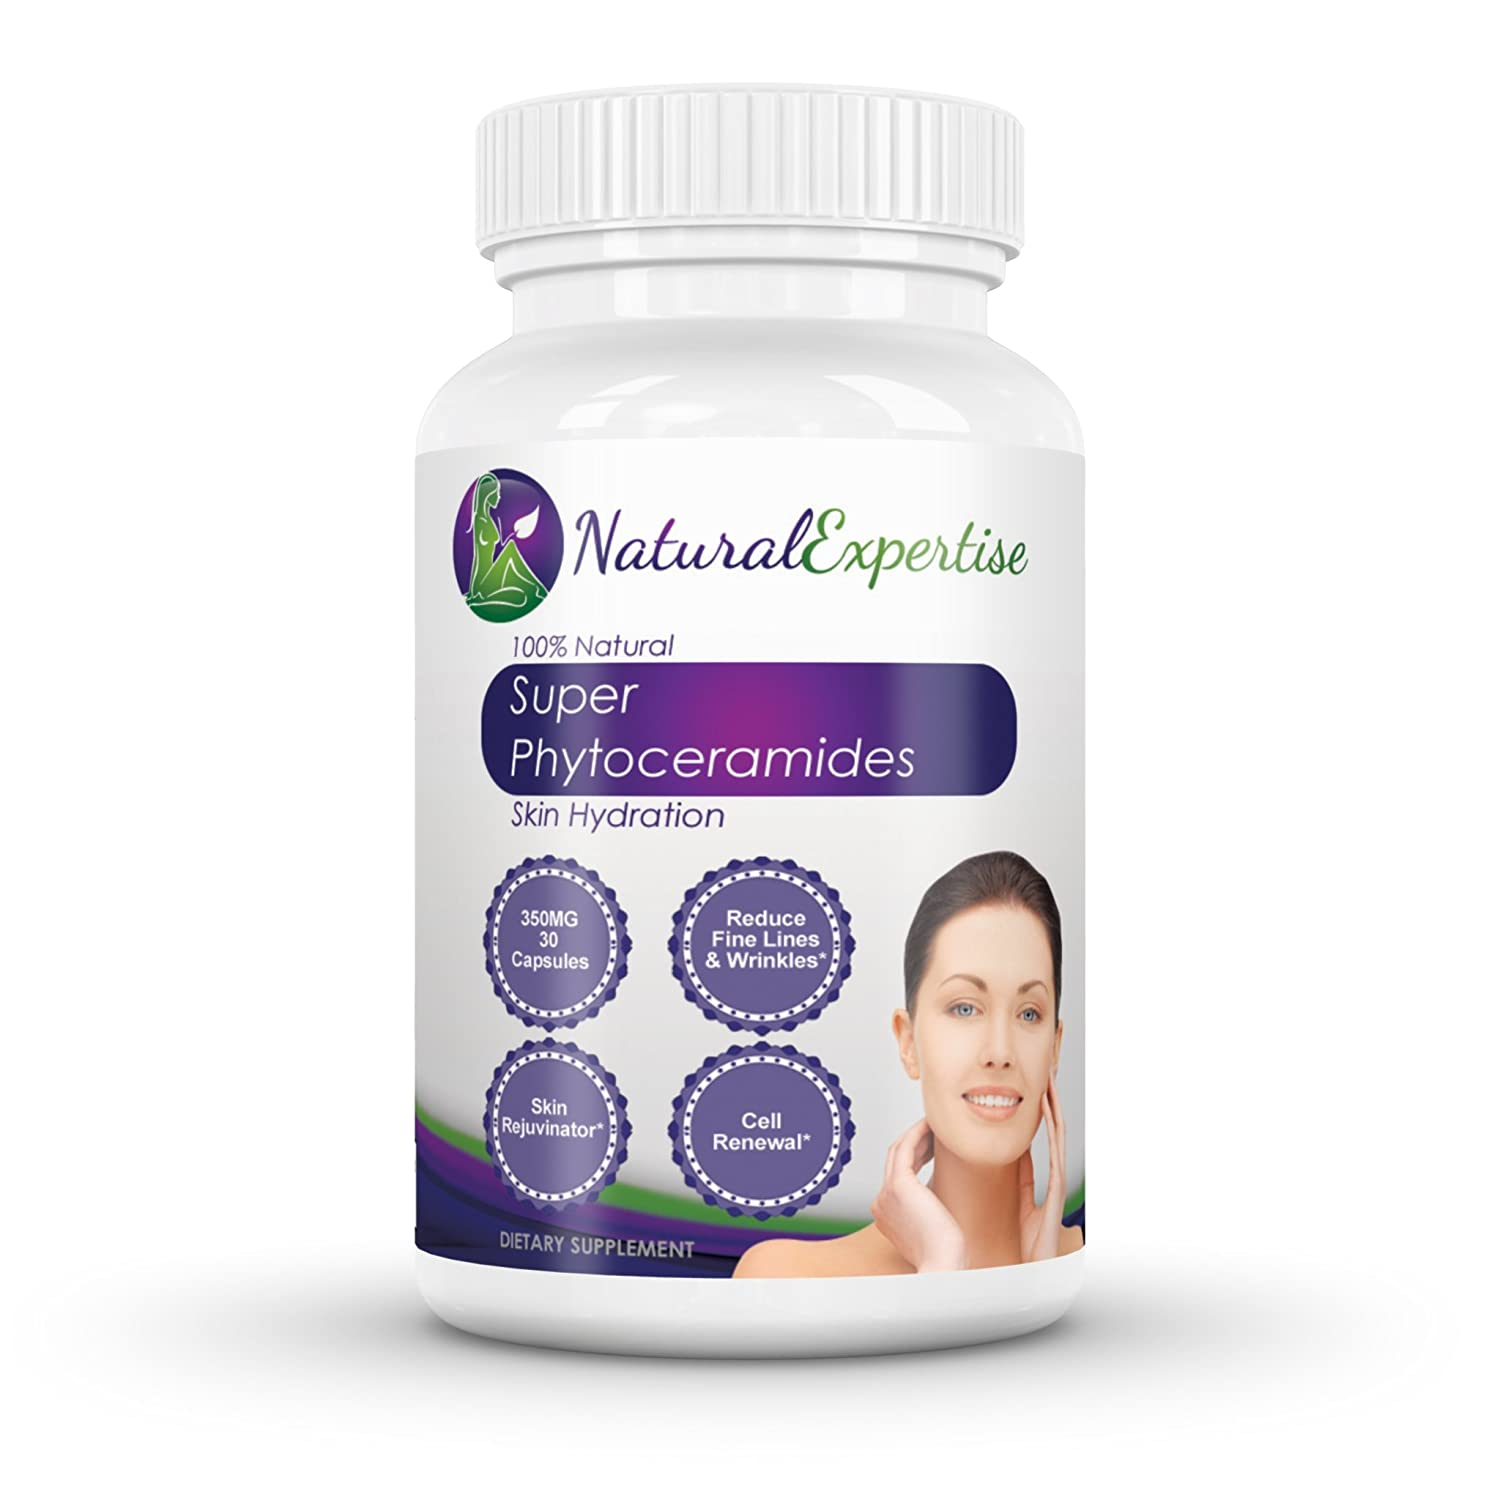 Super Phytoceramides - 350 MG 30 Capsules Plant Derived   100% All Natural  Gluten Free Ingredients  